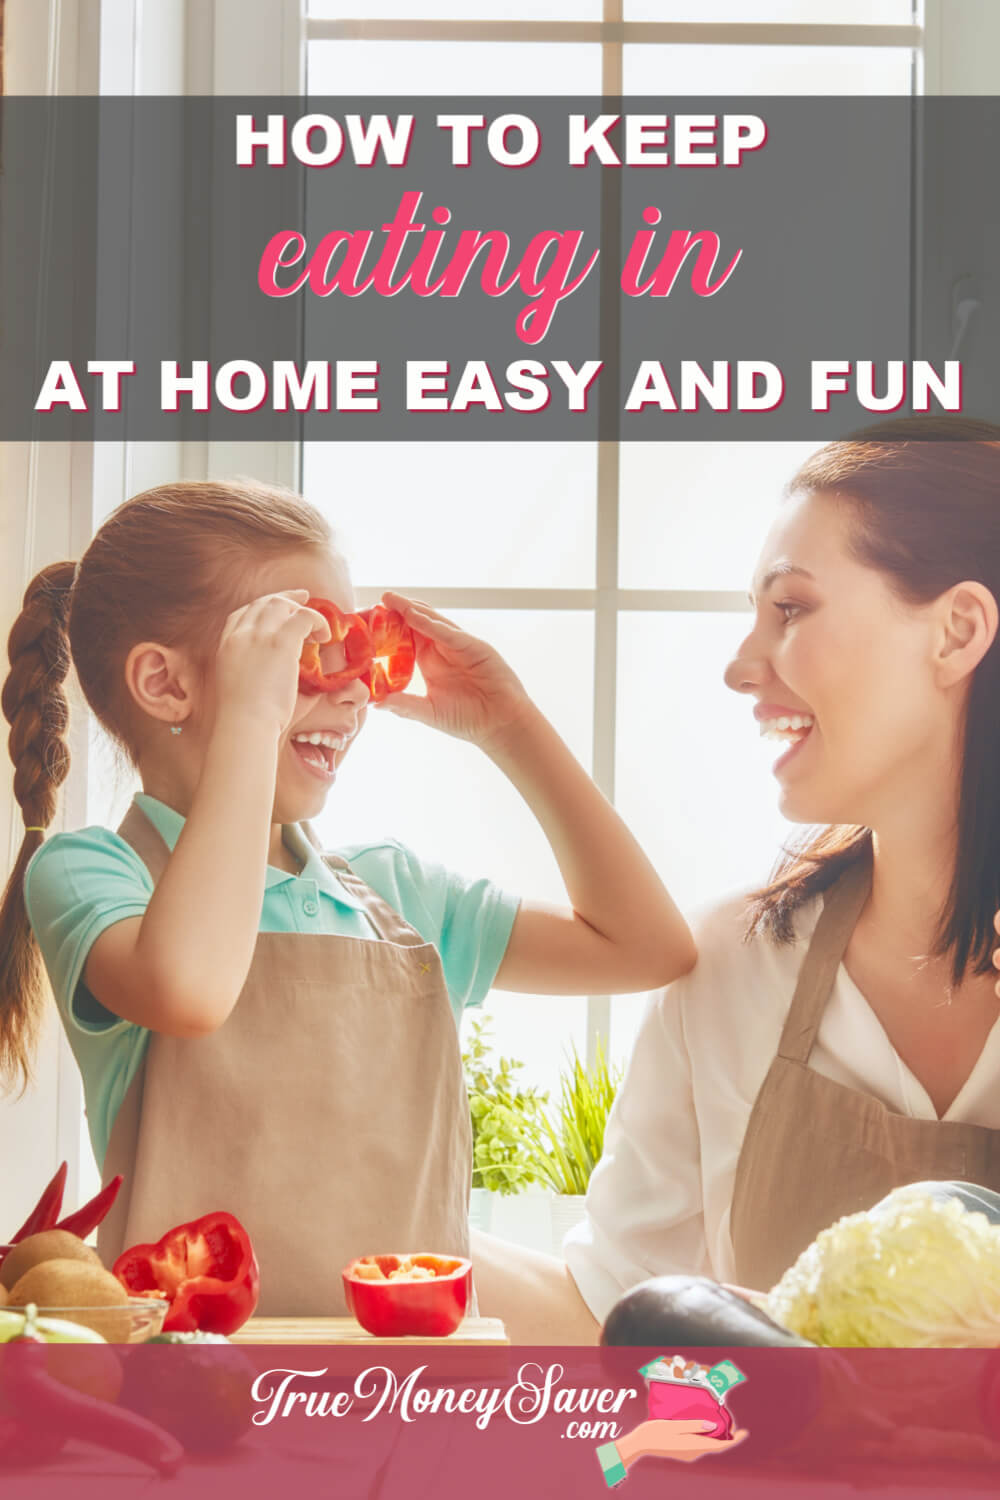 Wasting money by eating out? Start this eating at home challenge! Eating at home to save money can be a fun challenge! You can easily start how to make eating at home fun with these tips!